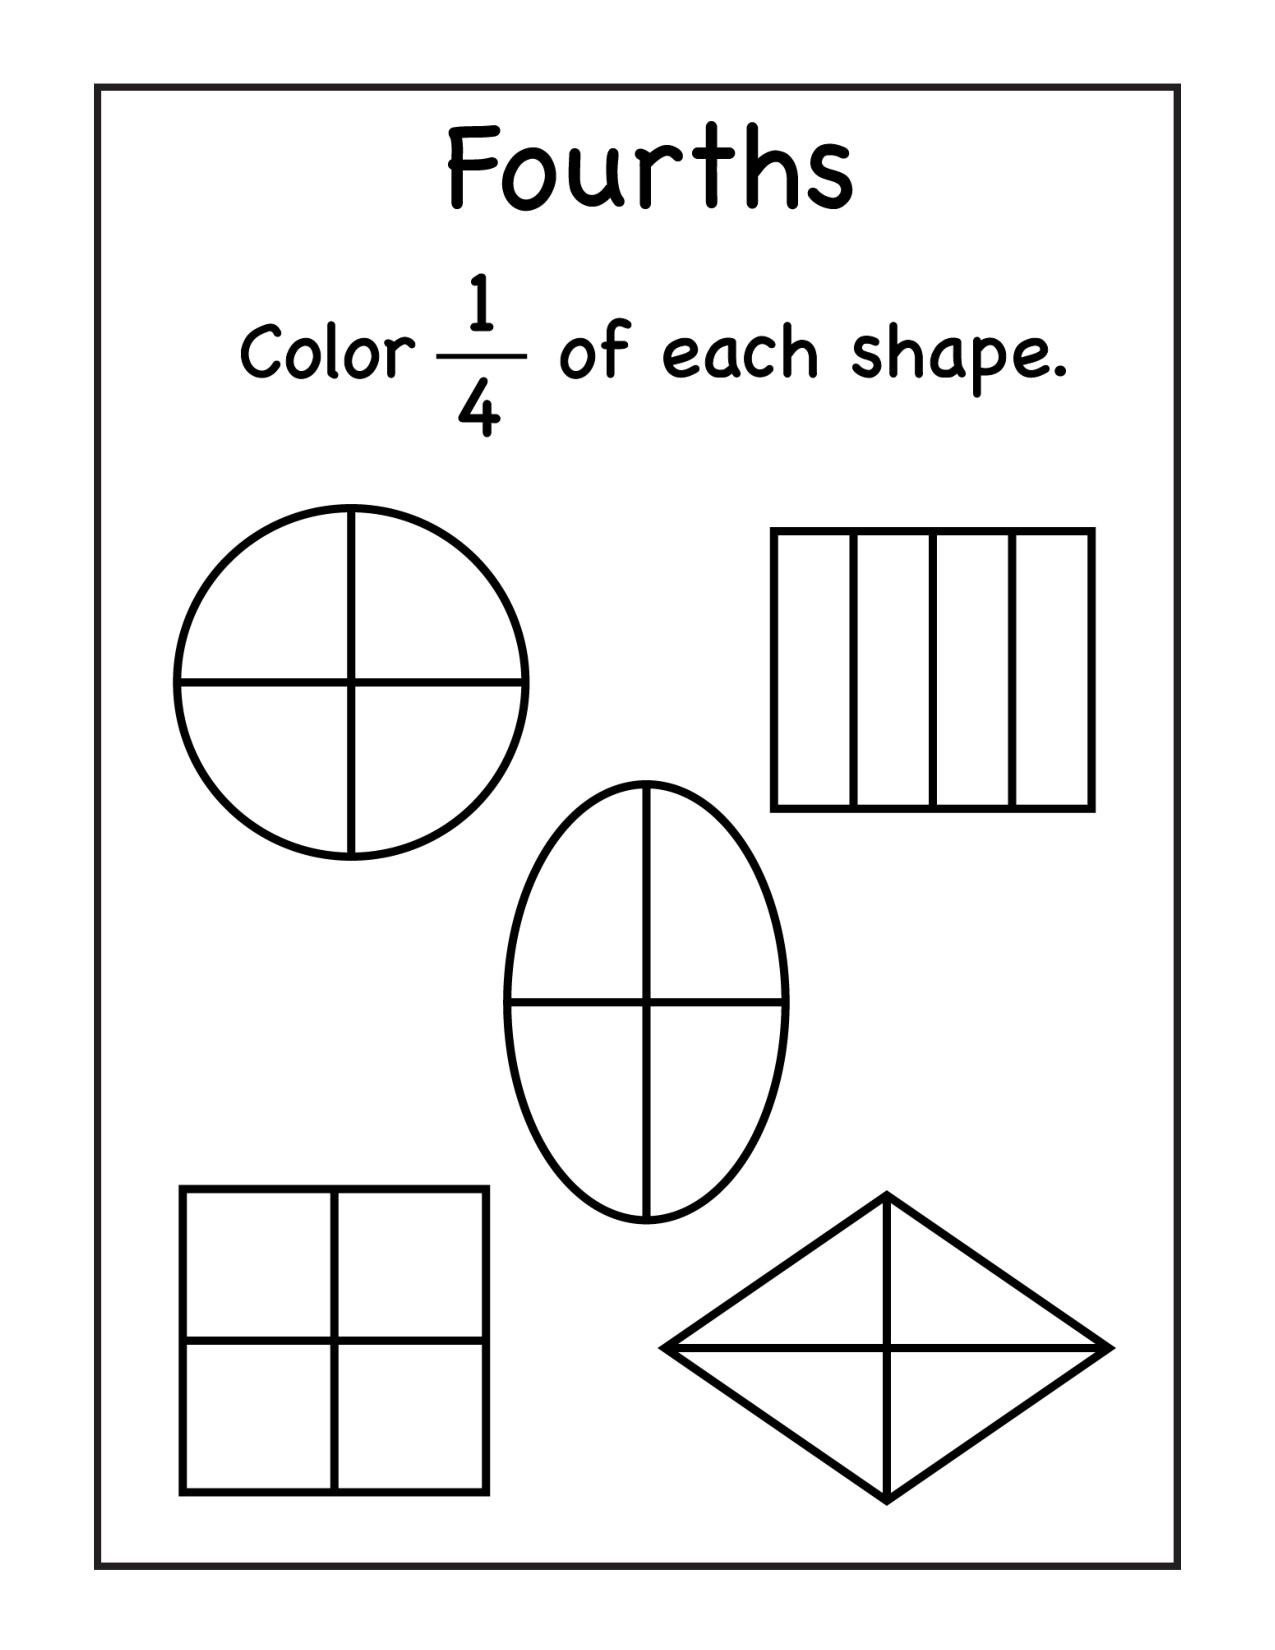 Fractions Worksheets First Grade Fraction Worksheets for 1st Grade